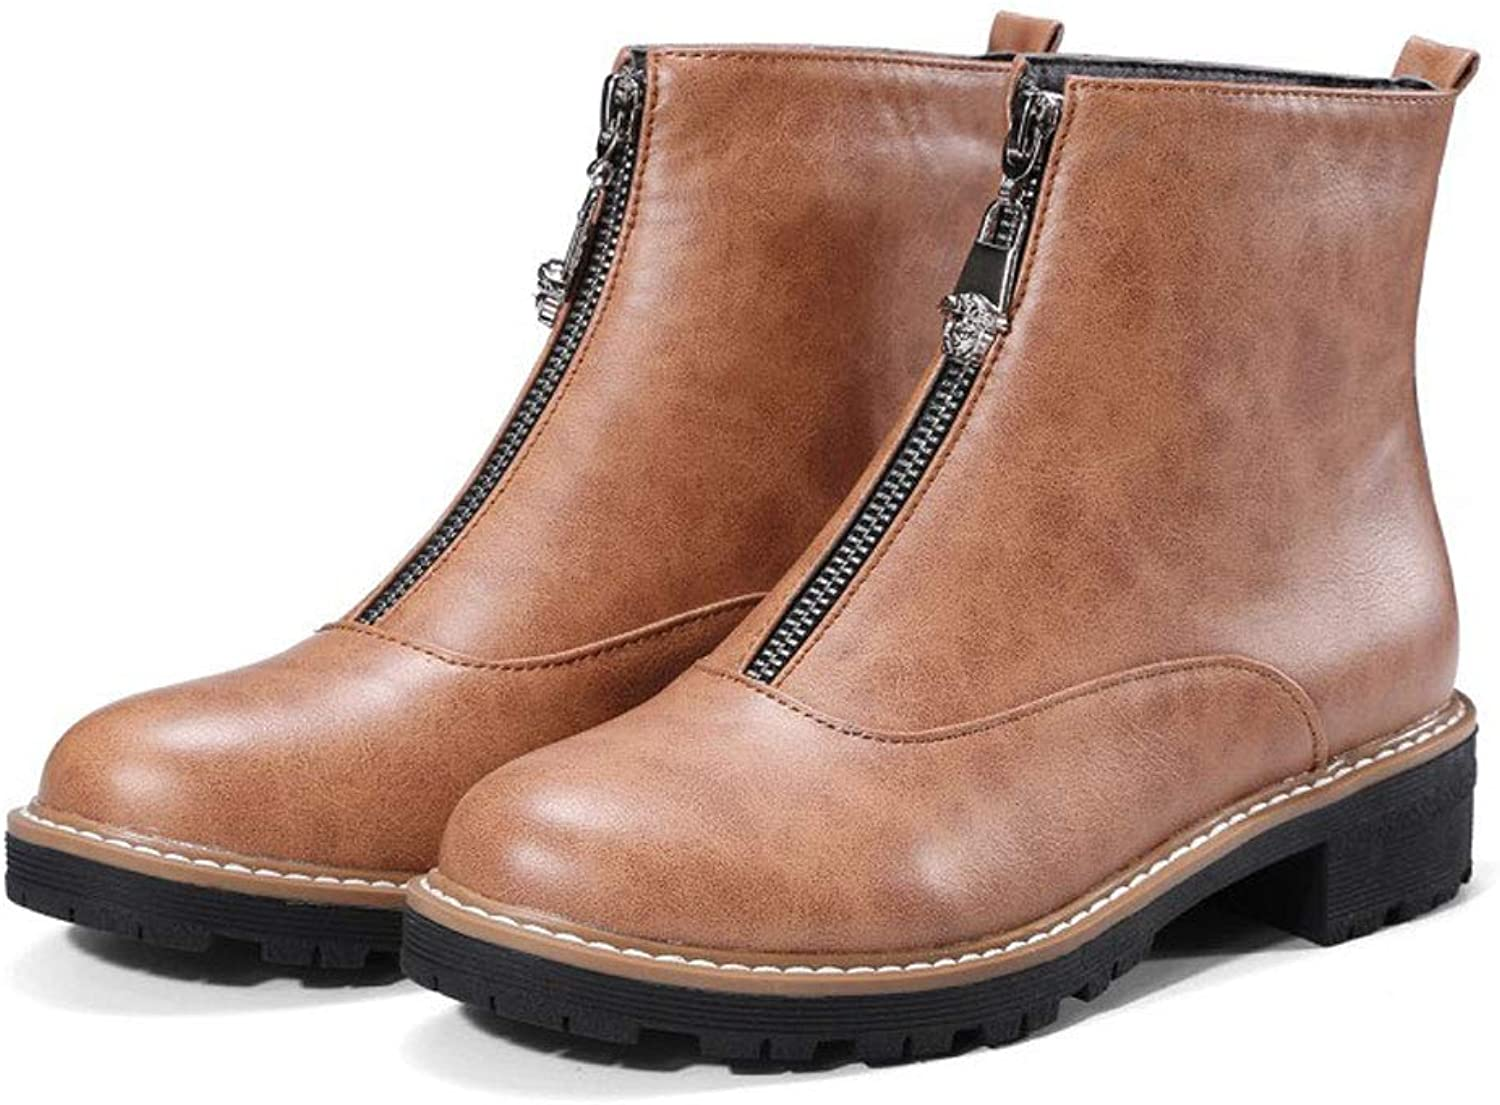 Low-Heeled Martin Boots, Thick Ankle Boots Round Head Zipper Short Boots Waterproof Platform Anti-Skid Knight Low Boots Women's Comfortable Student shoes